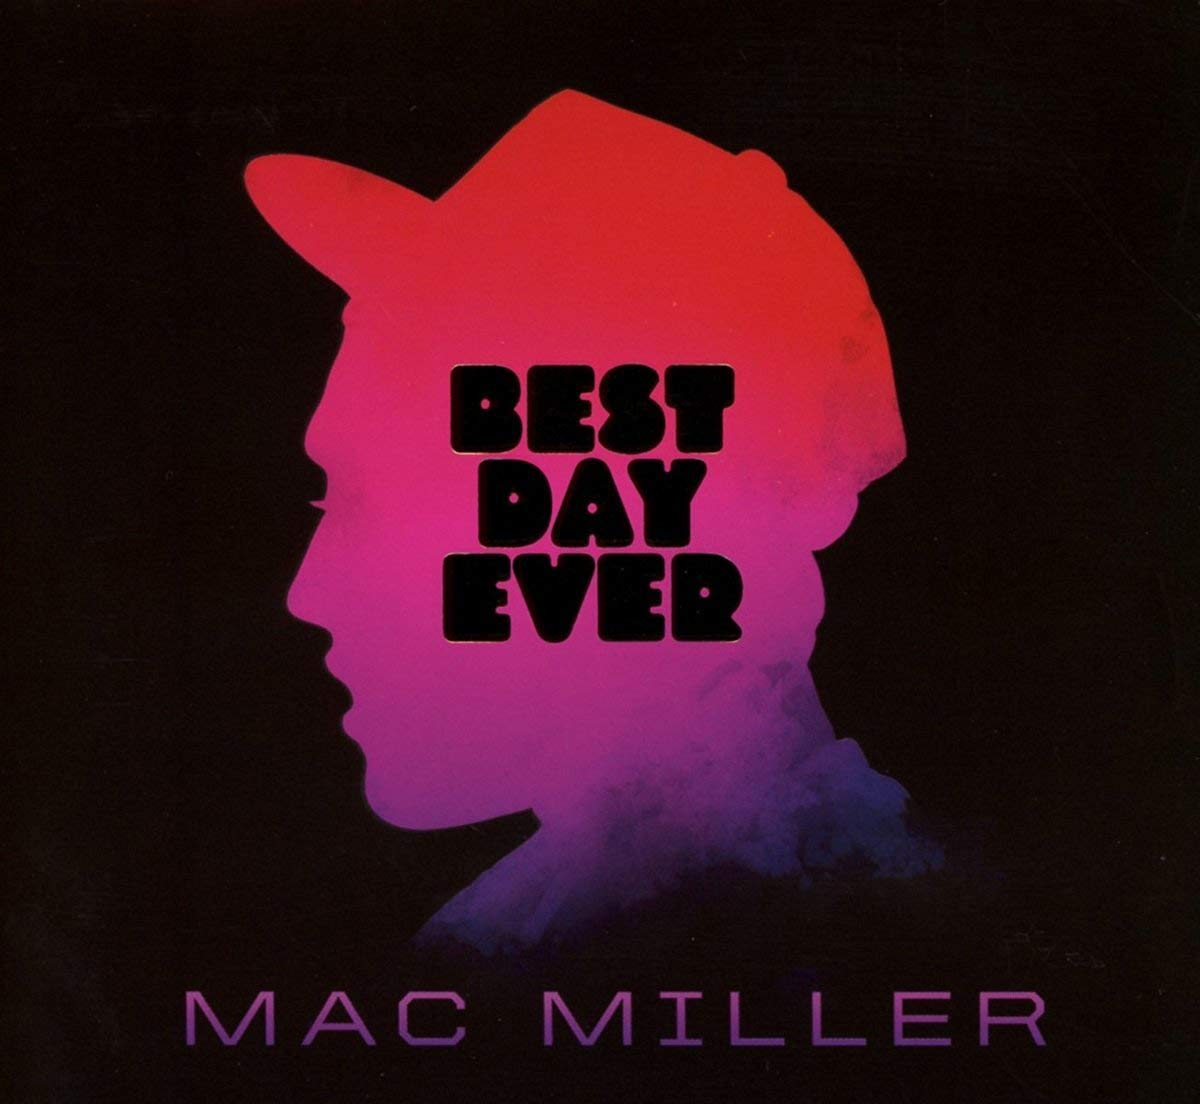 Mac Miller - Best Day Ever [2LP] - Urban Vinyl Records